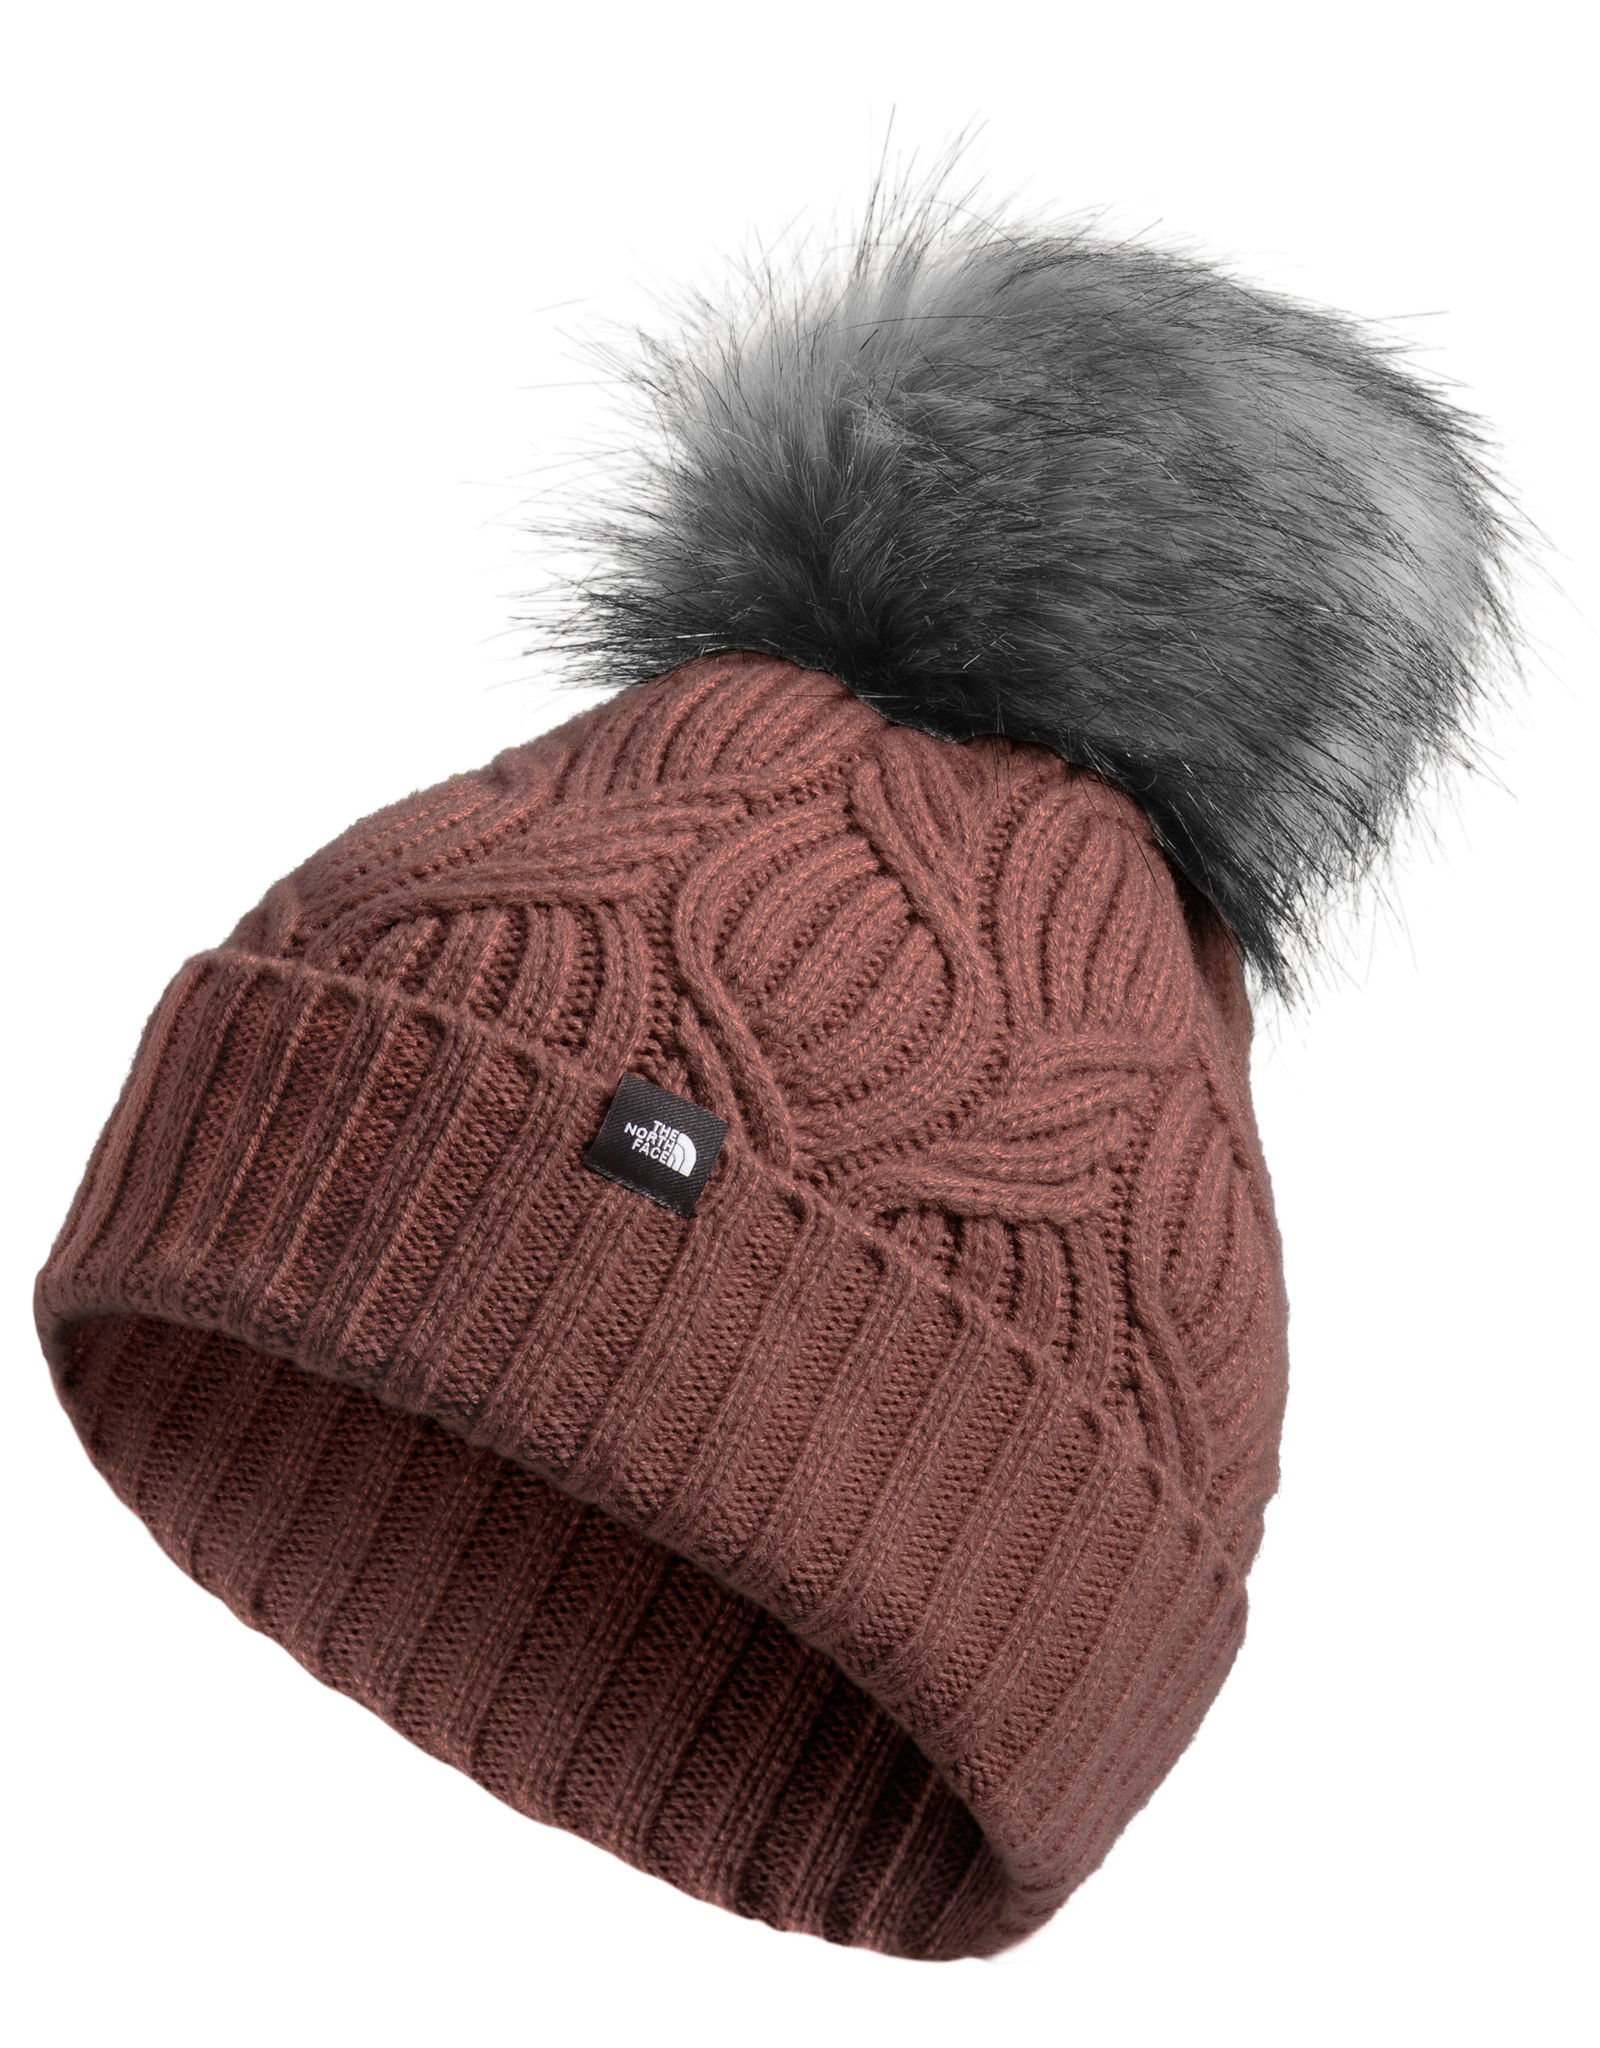 The North Face The North Face Women's Oh-mega Fur Pom Beanie -W2020